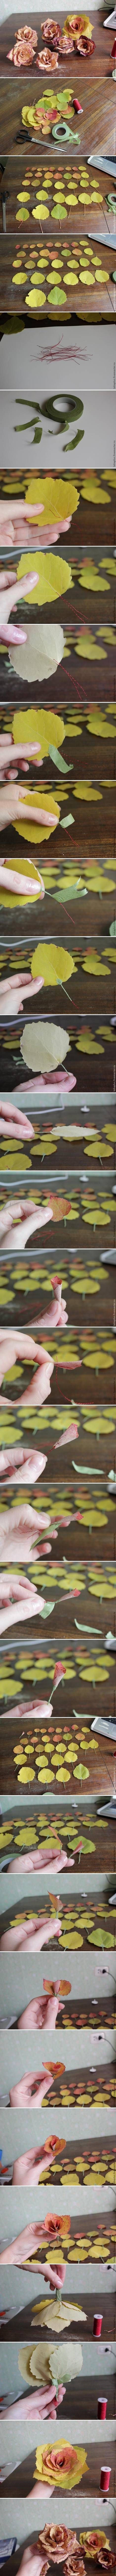 DIY CRAFT PROJECT -  HANDMADE ROSES FROM FALL LEAVES. ~  THESE ROSES ARE ABSOLUTELY BEAUTIFUL!!!  IT'S AMAZING HOW THEY DRY TO A PERFECT ROSE...EVEN THE COLOR!!  ♥A